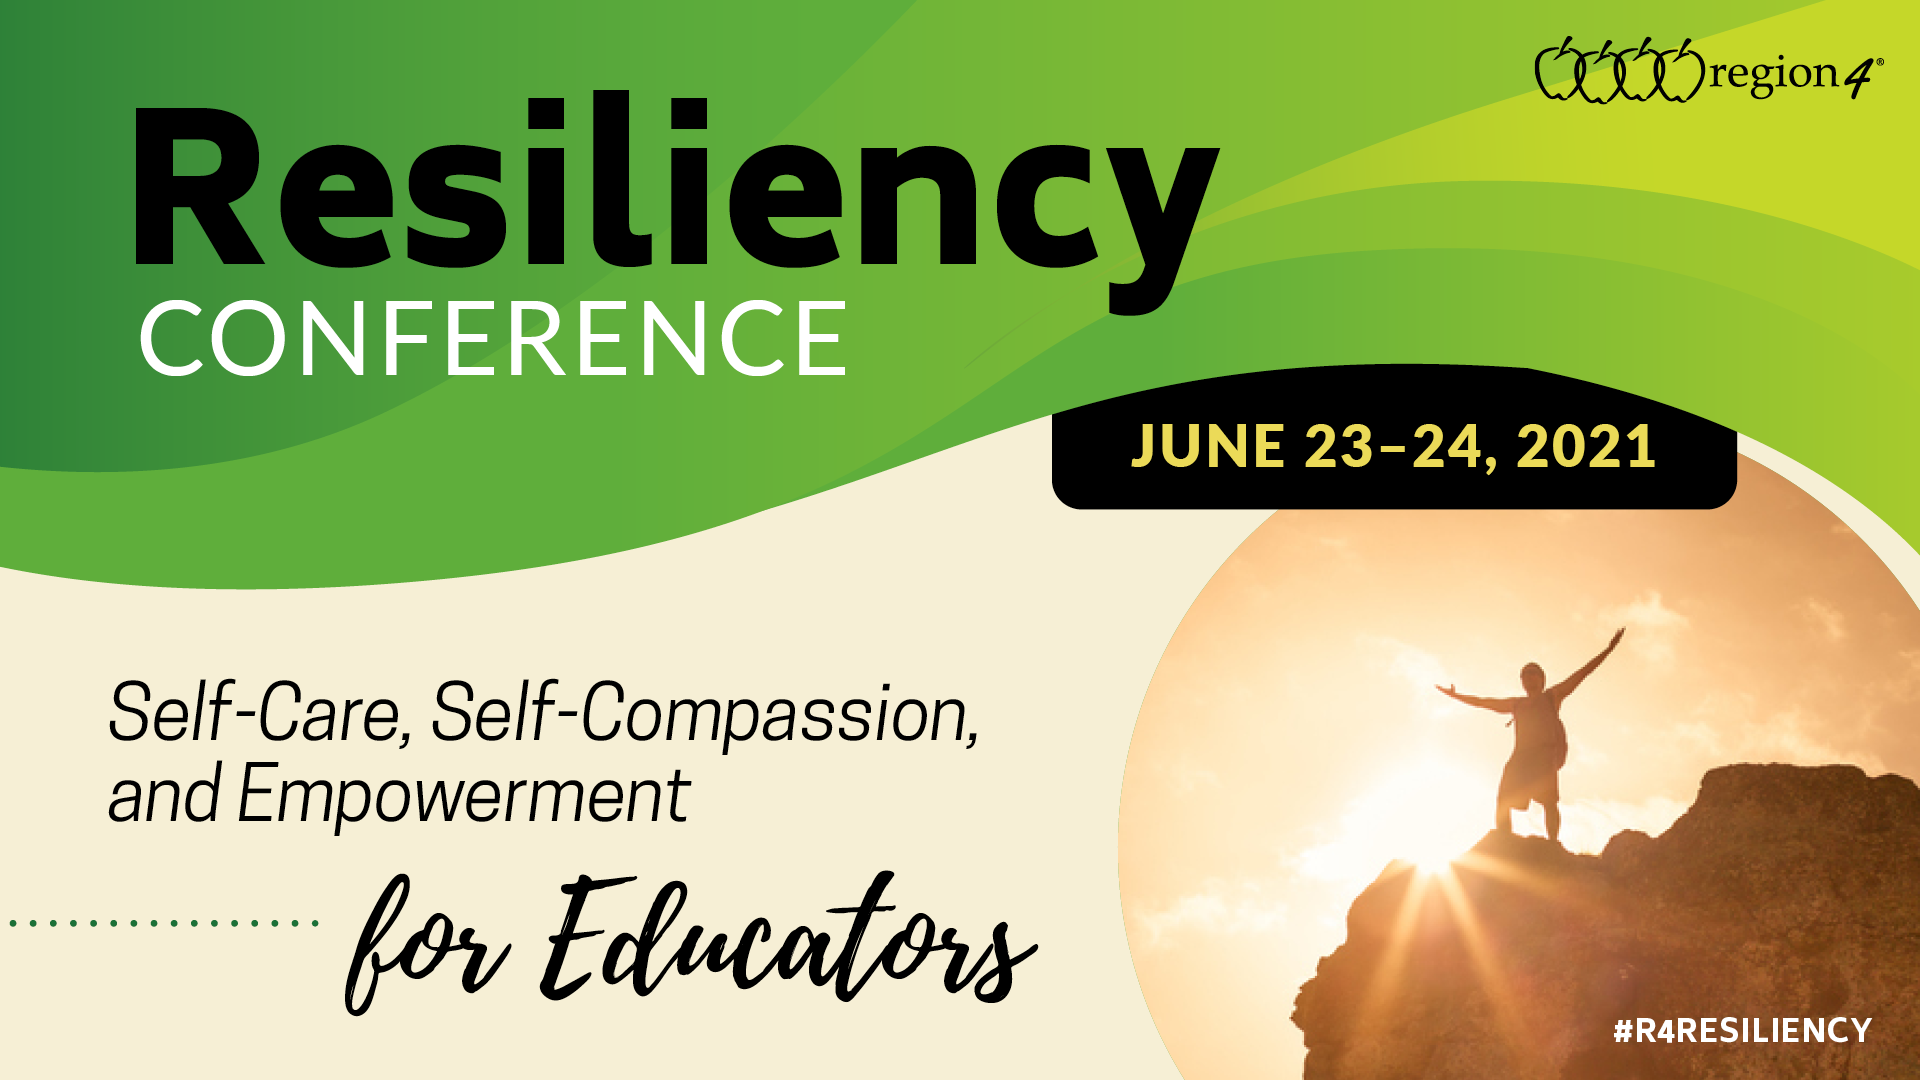 resiliency-conference-2021-tw